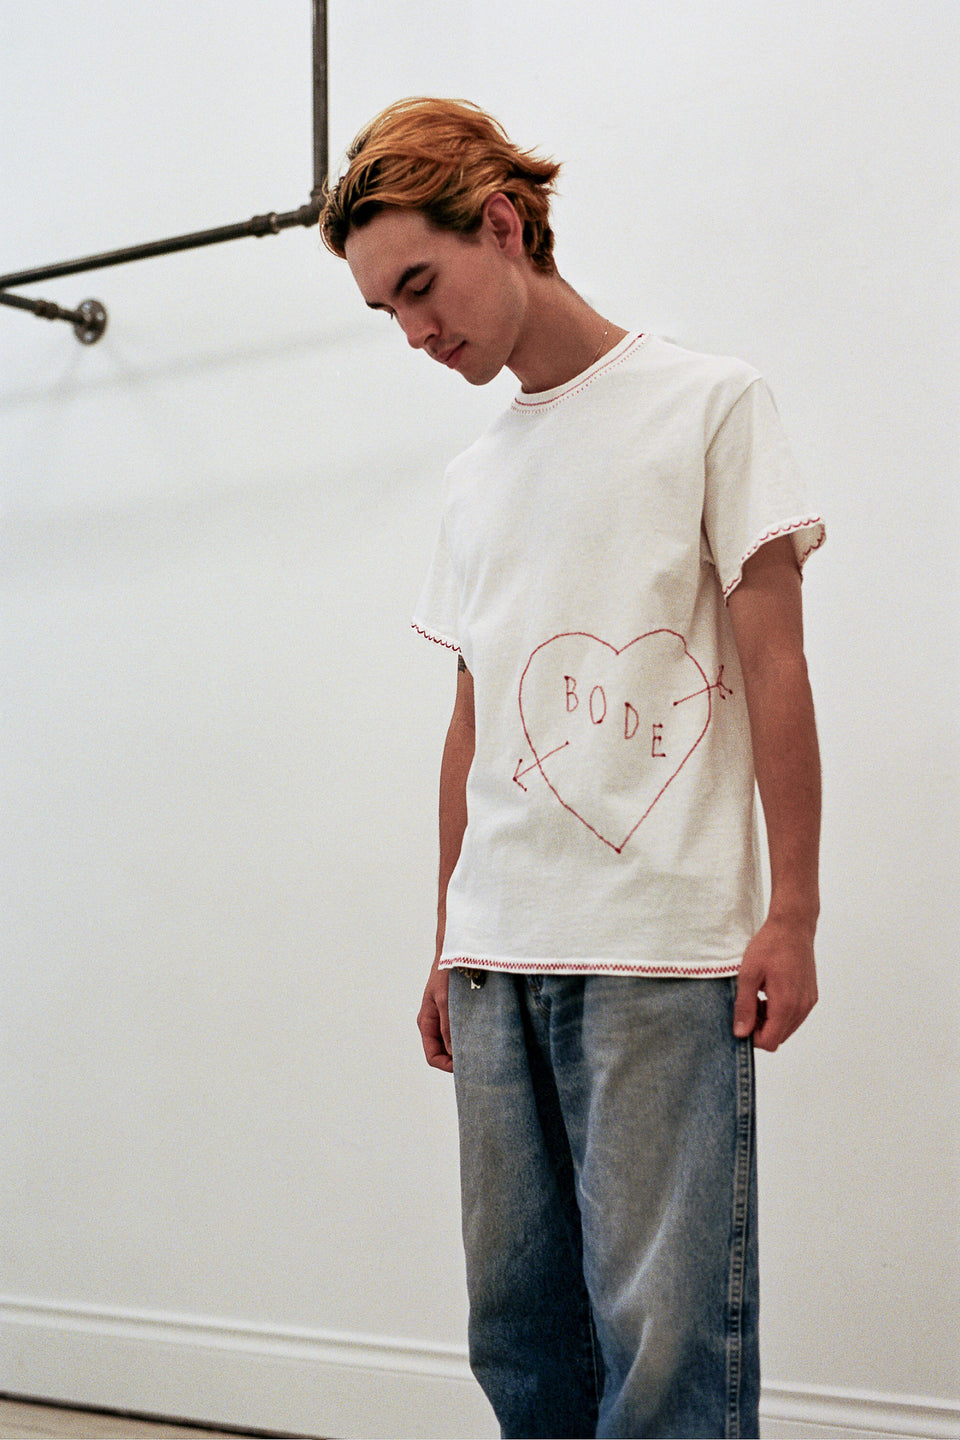 Emily Bode Hand Embroidered Bode Heart T-Shirt